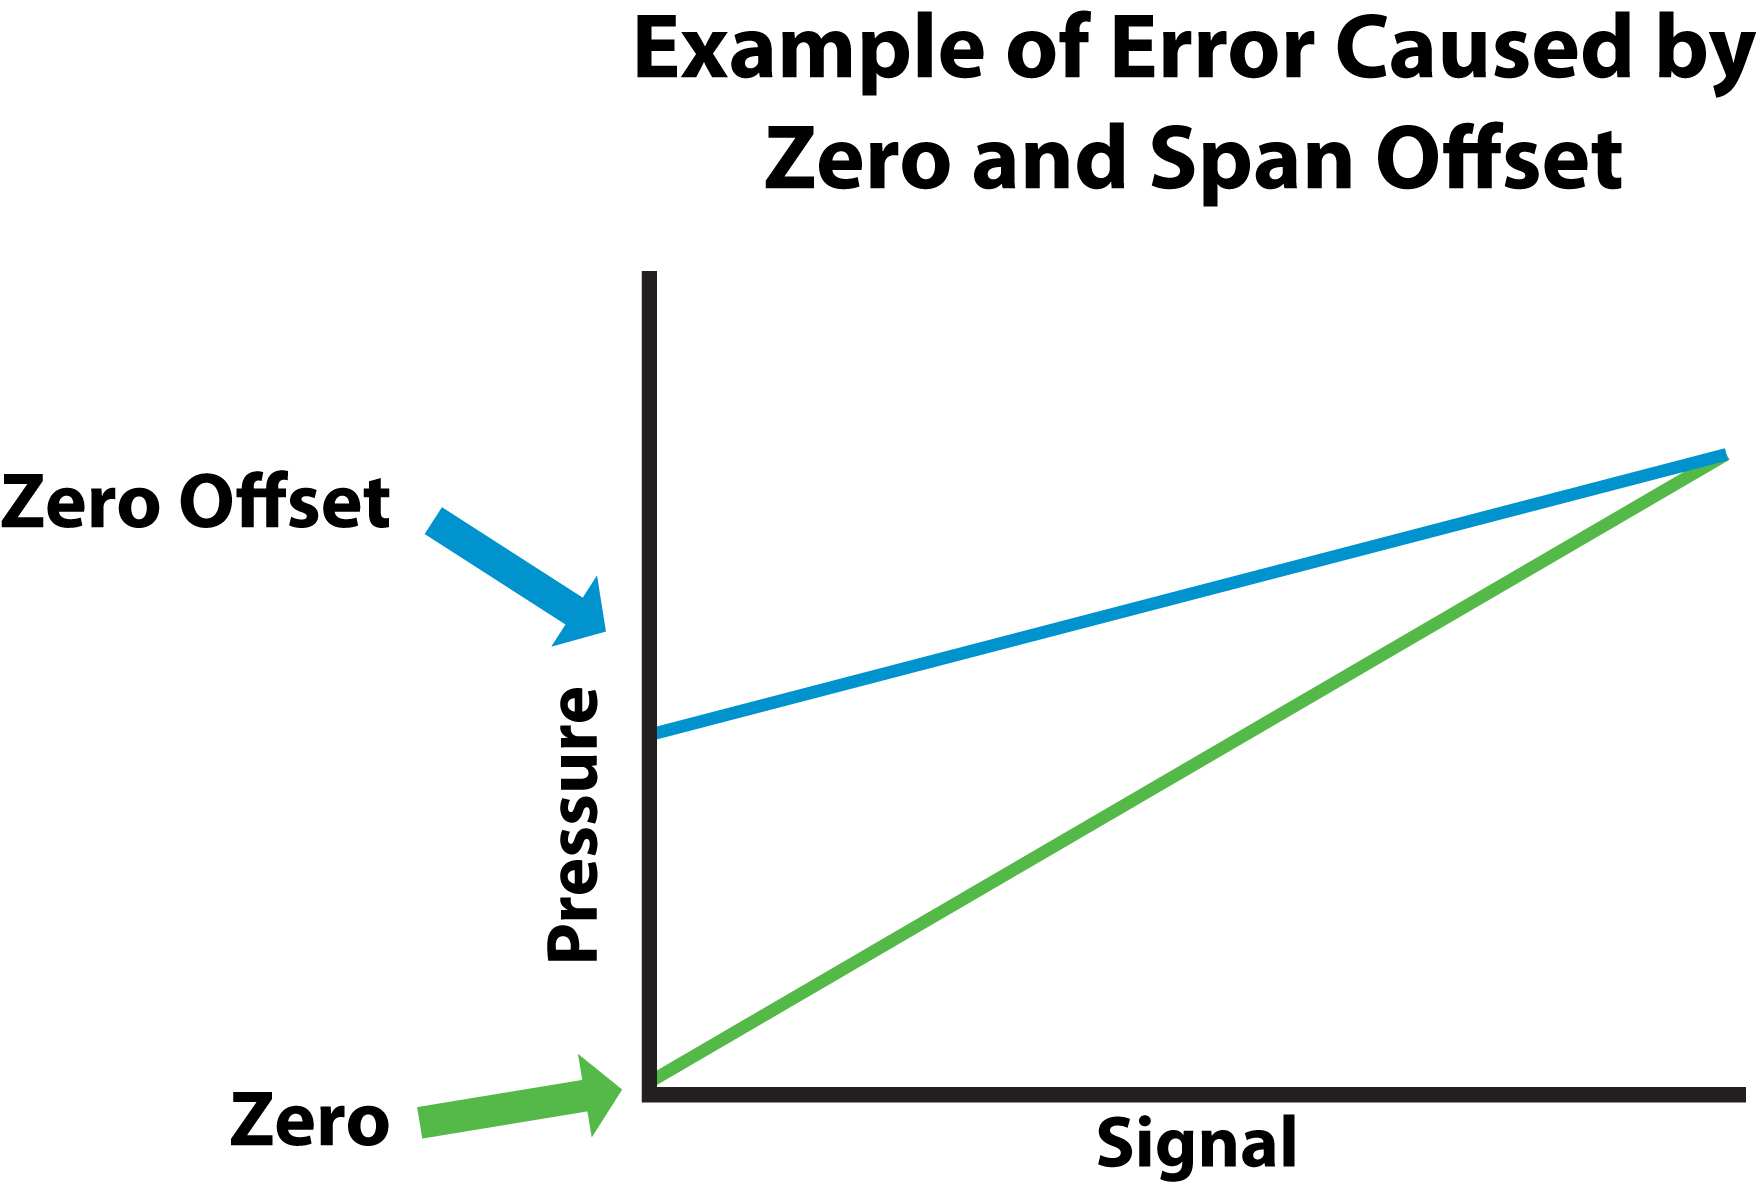 Example of Error caused by Zero and Span Offset